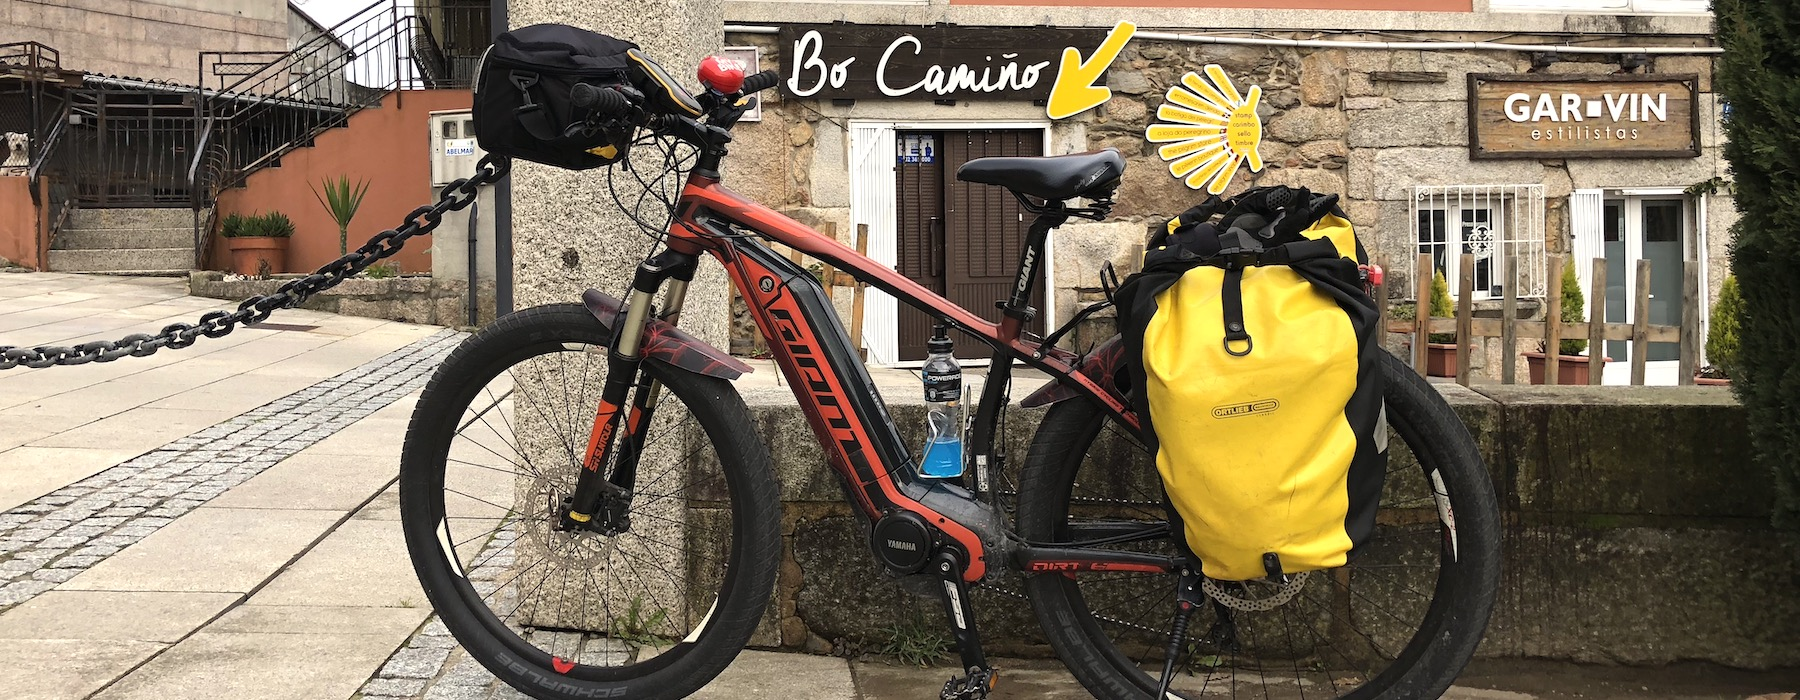 Bike in Camino Santiago with yellow arrow sign